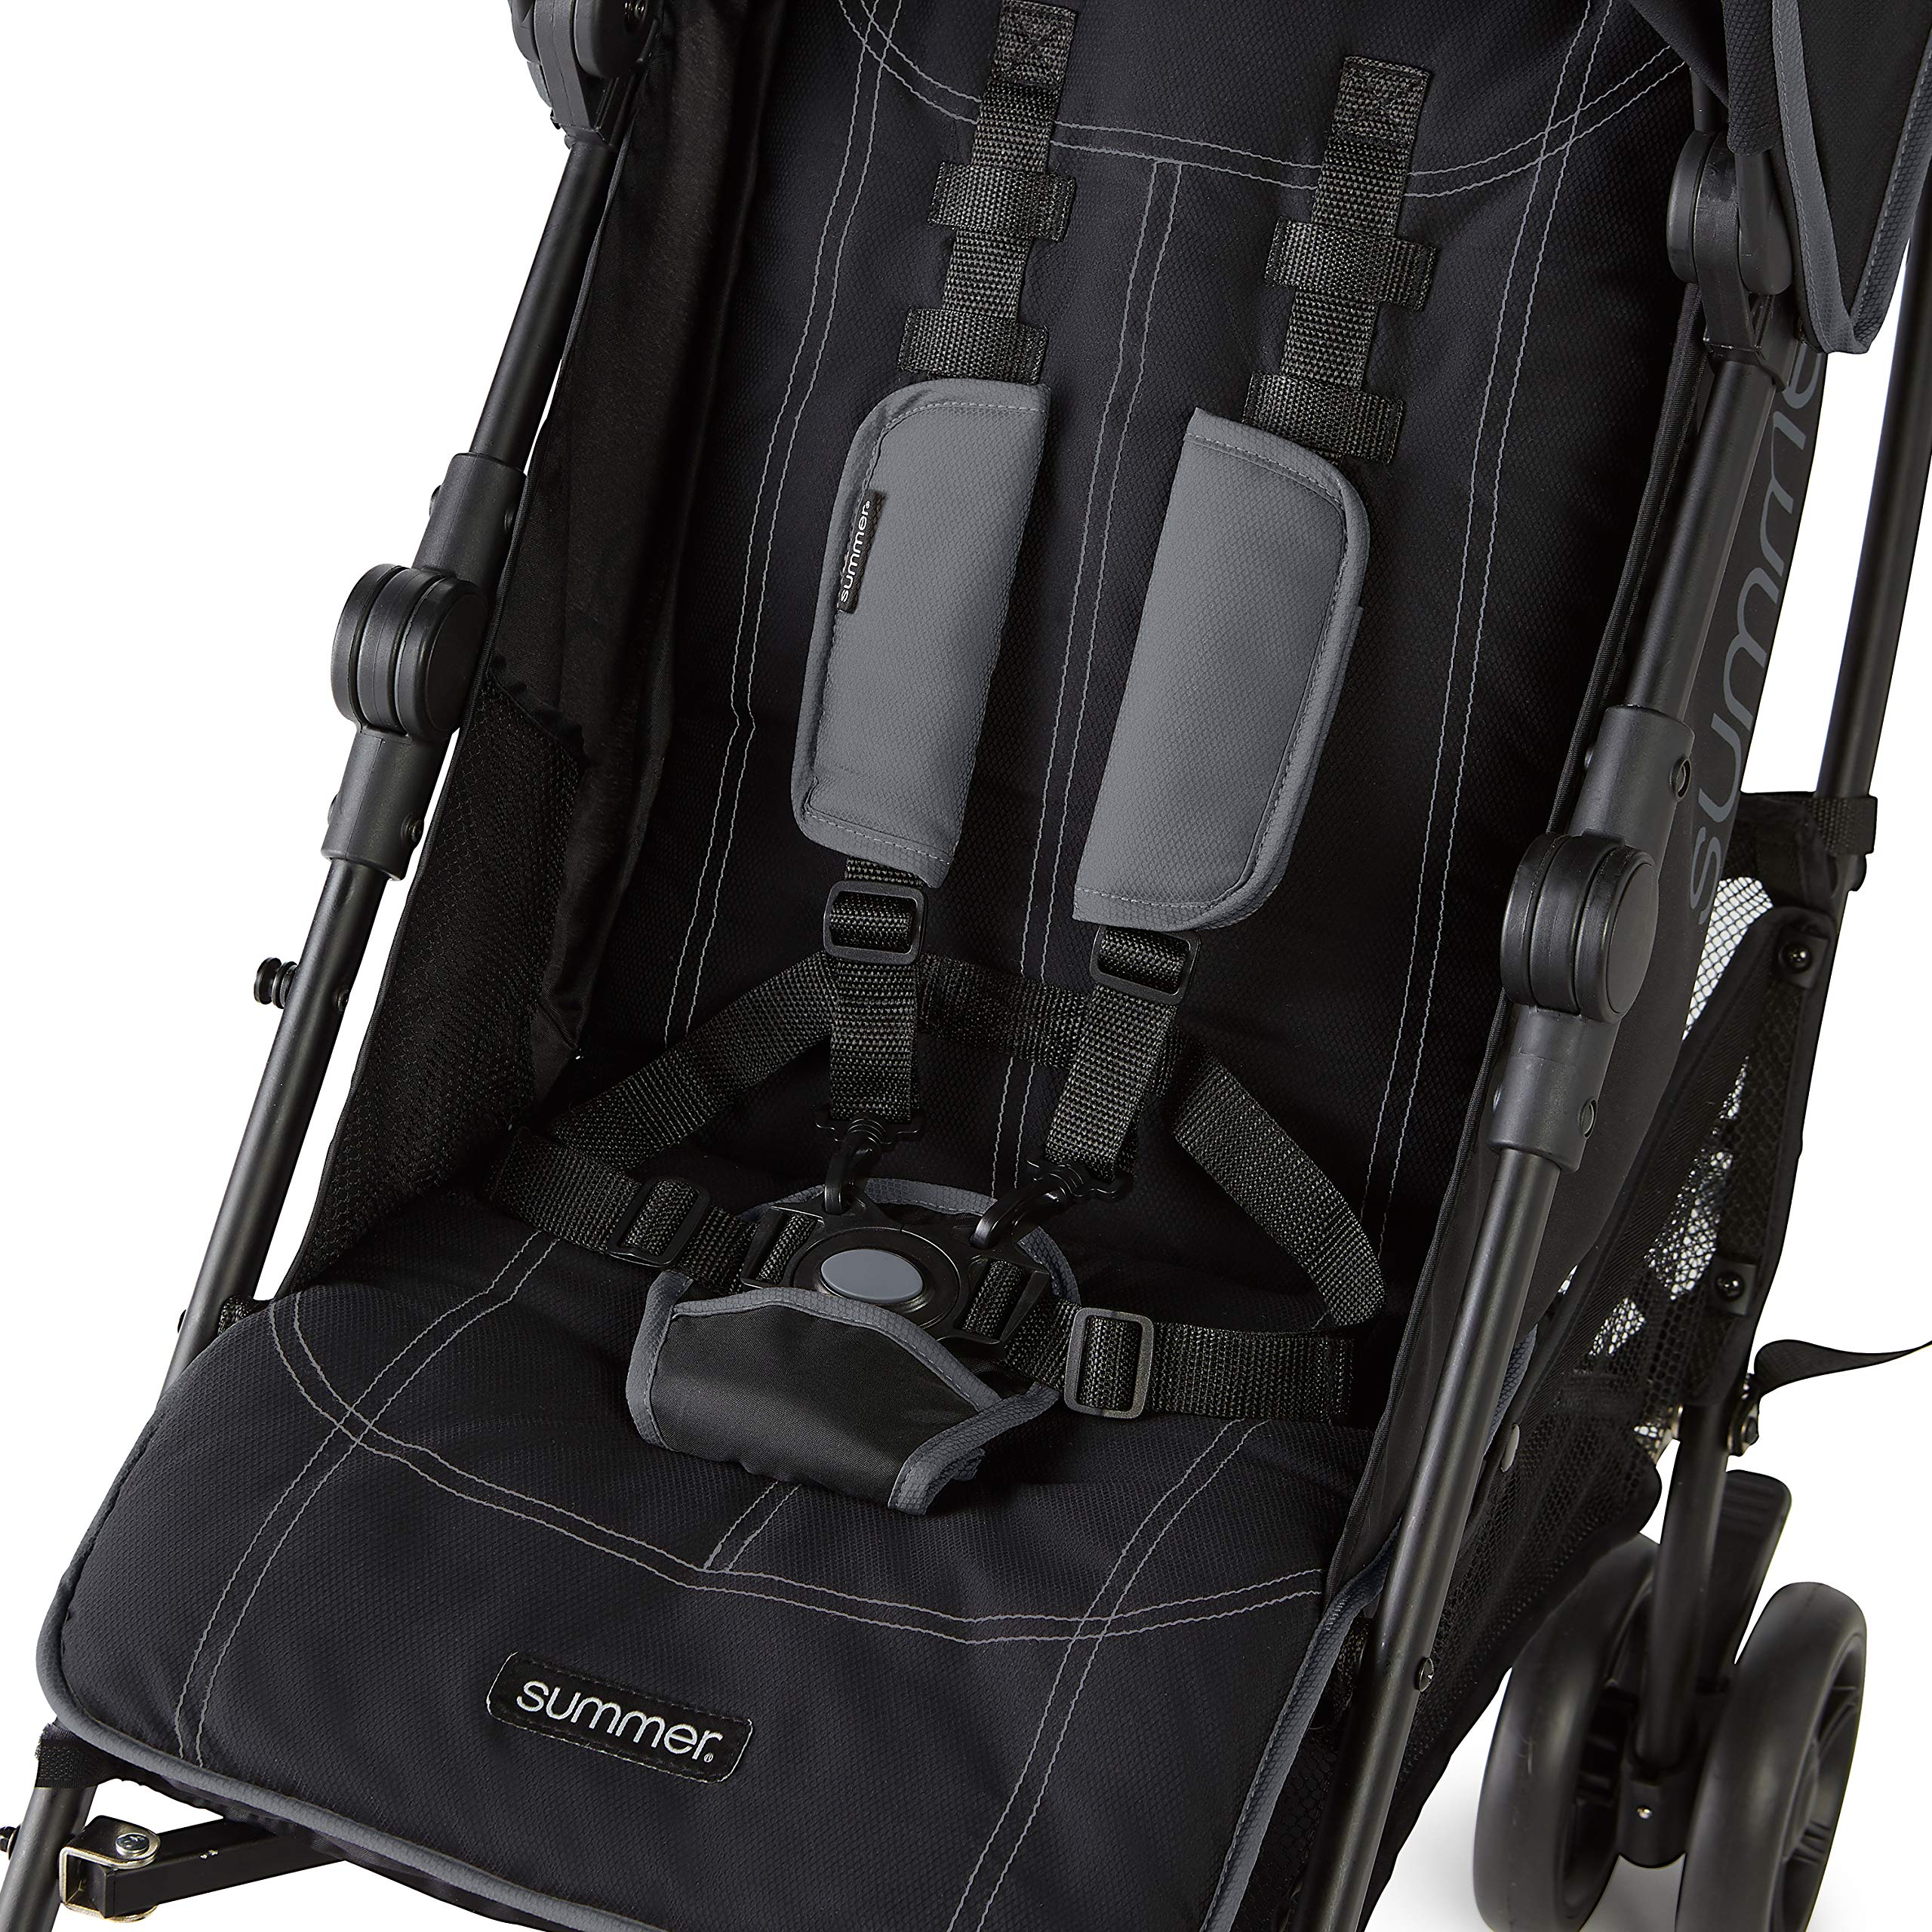 Summer 3Dlite+ Convenience Stroller, Matte Black - Lightweight Umbrella Stroller with Oversized Canopy, Extra-Large Storage and Compact Fold by Summer Infant (Image #5)